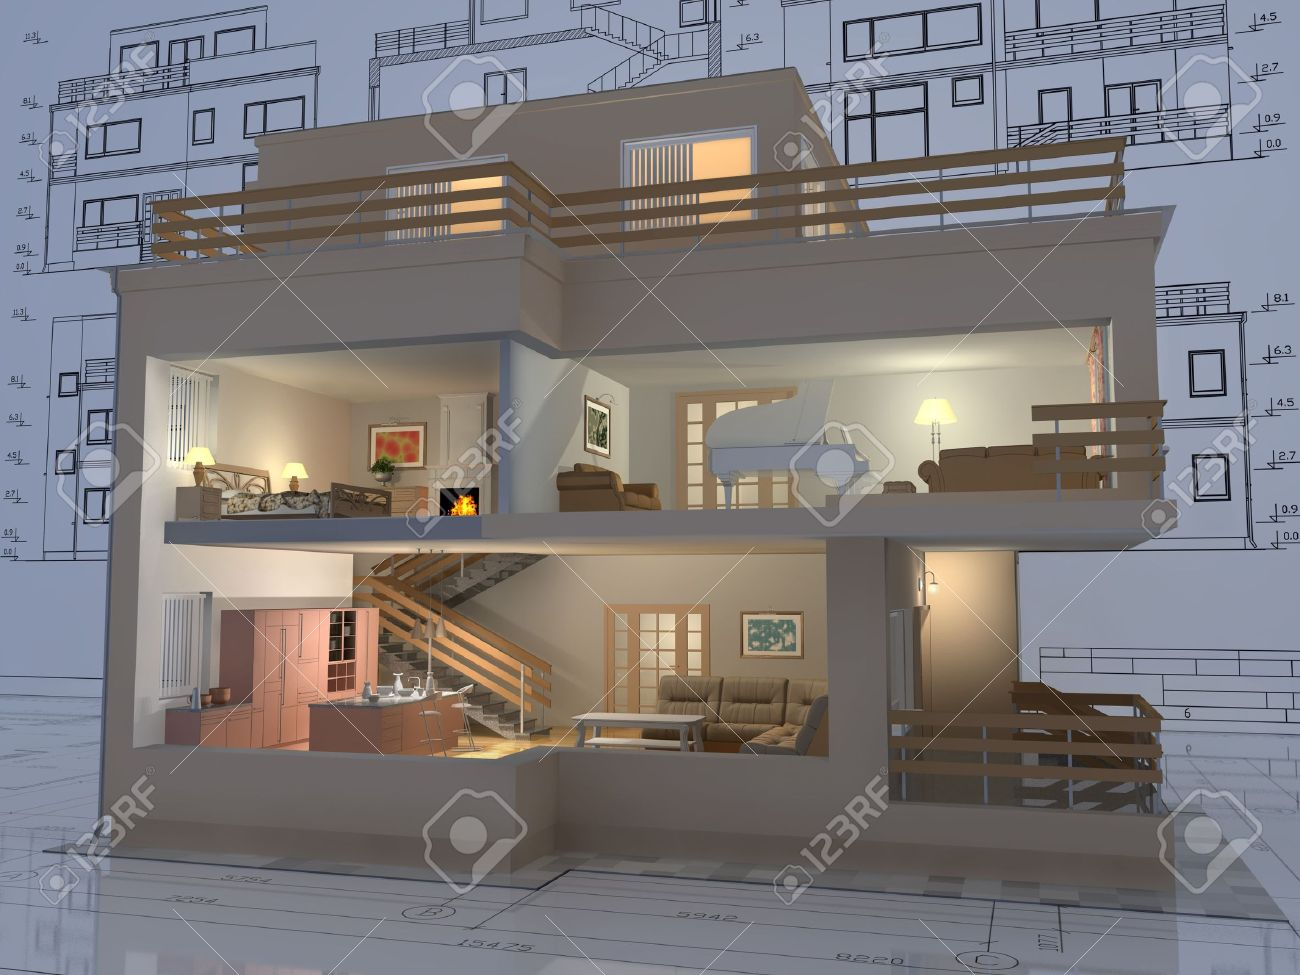 architectural drawing images stock pictures royalty free architectural drawing 3d isometric view of the cut residential house on architect drawing